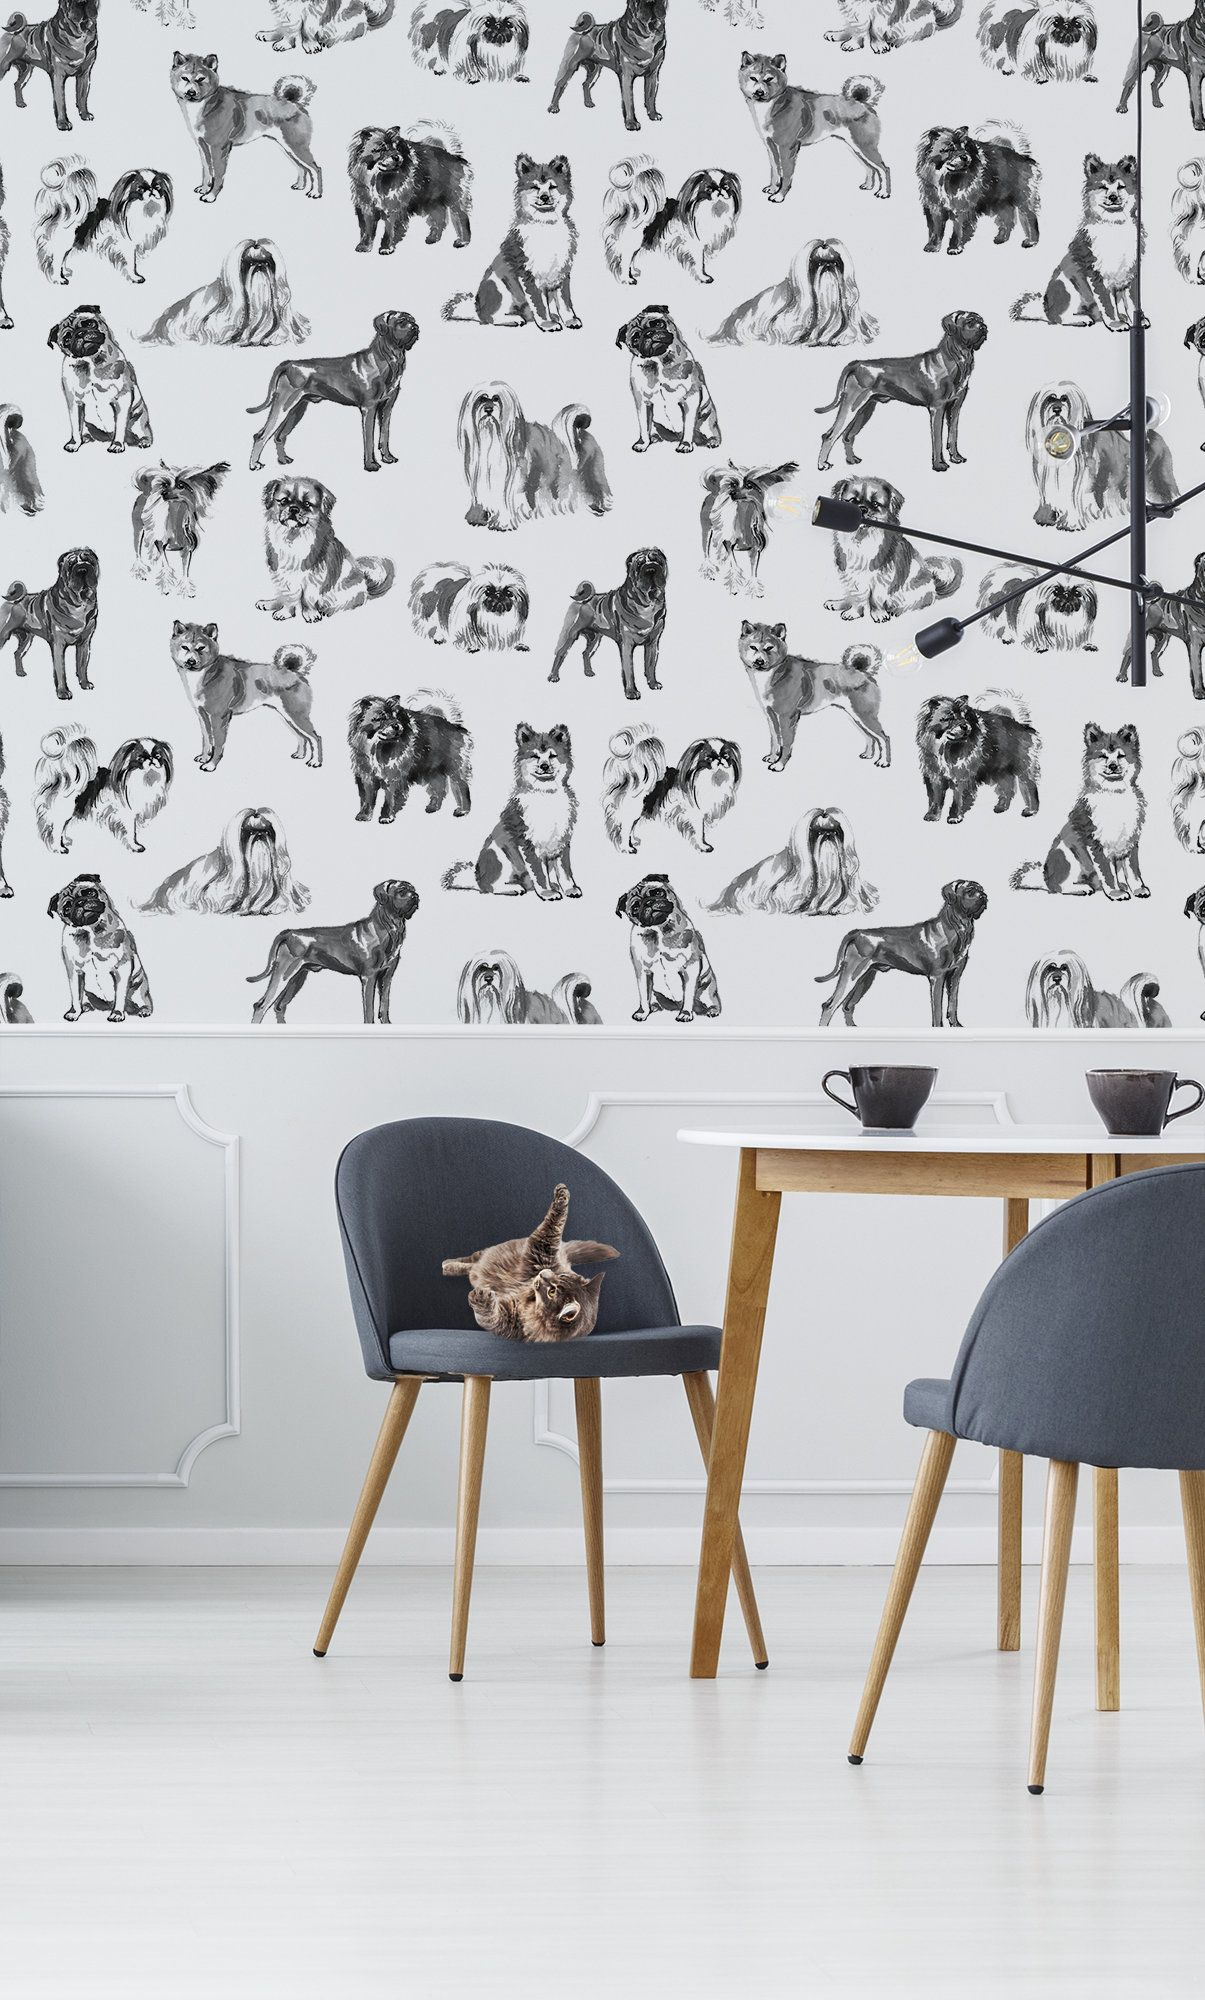 Dogs wallpaper, peel and stick wall mural, removable